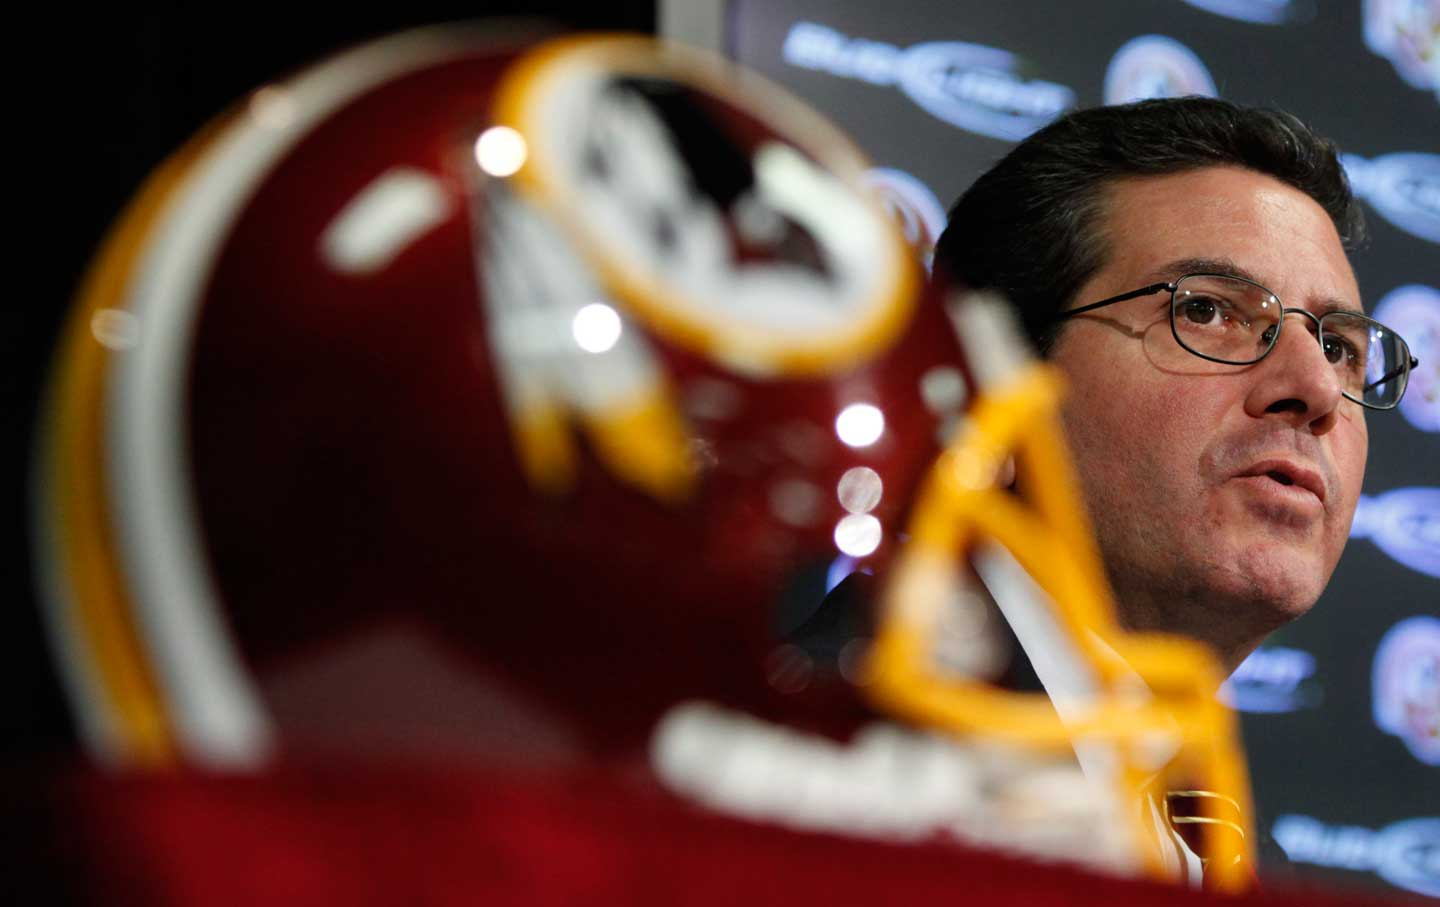 By Having the Washington R*dskins Host a Game on Thanksgiving, NFL Owners Show Their True Colors